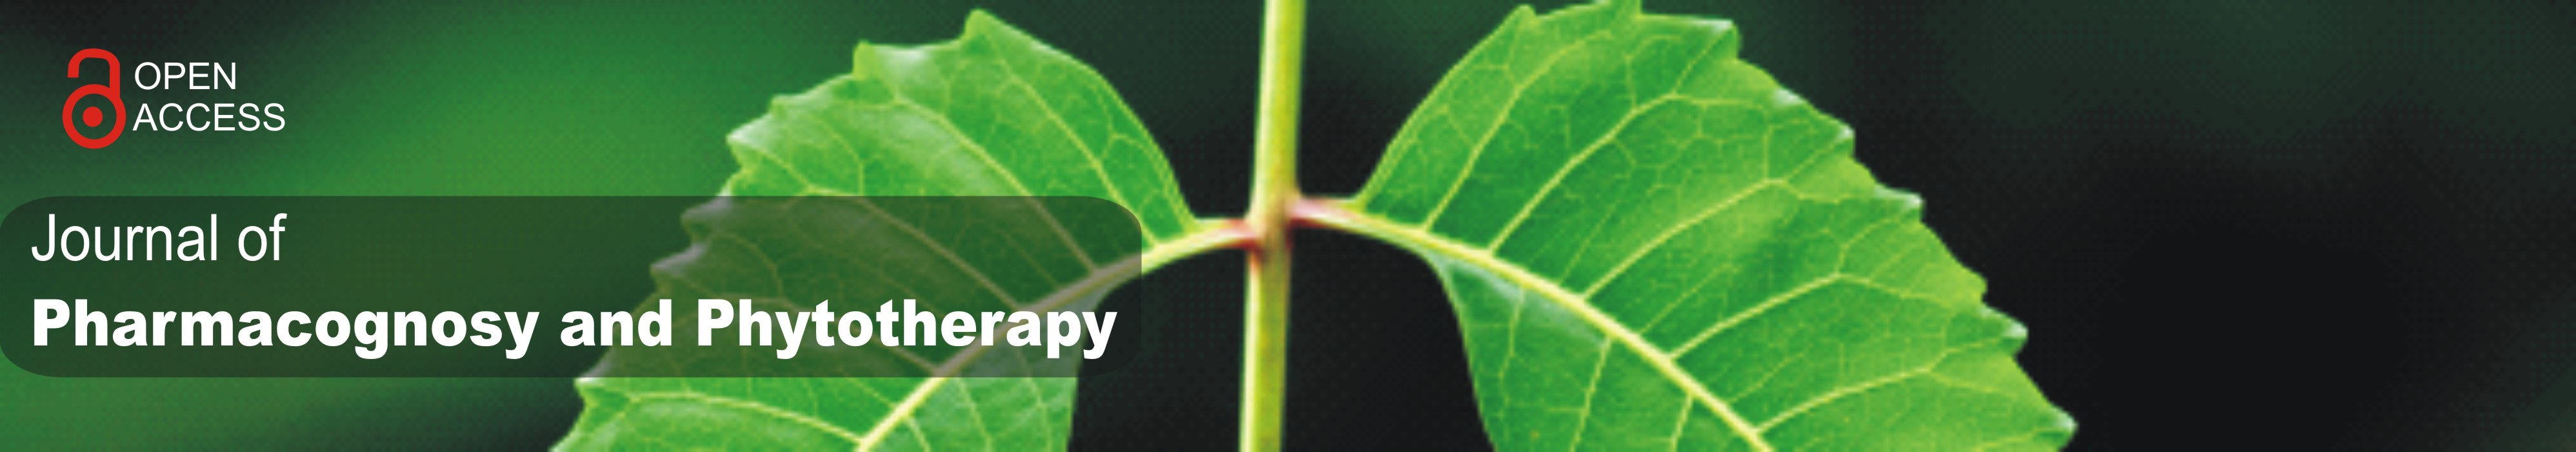 Journal of Pharmacognosy and Phytotherapy